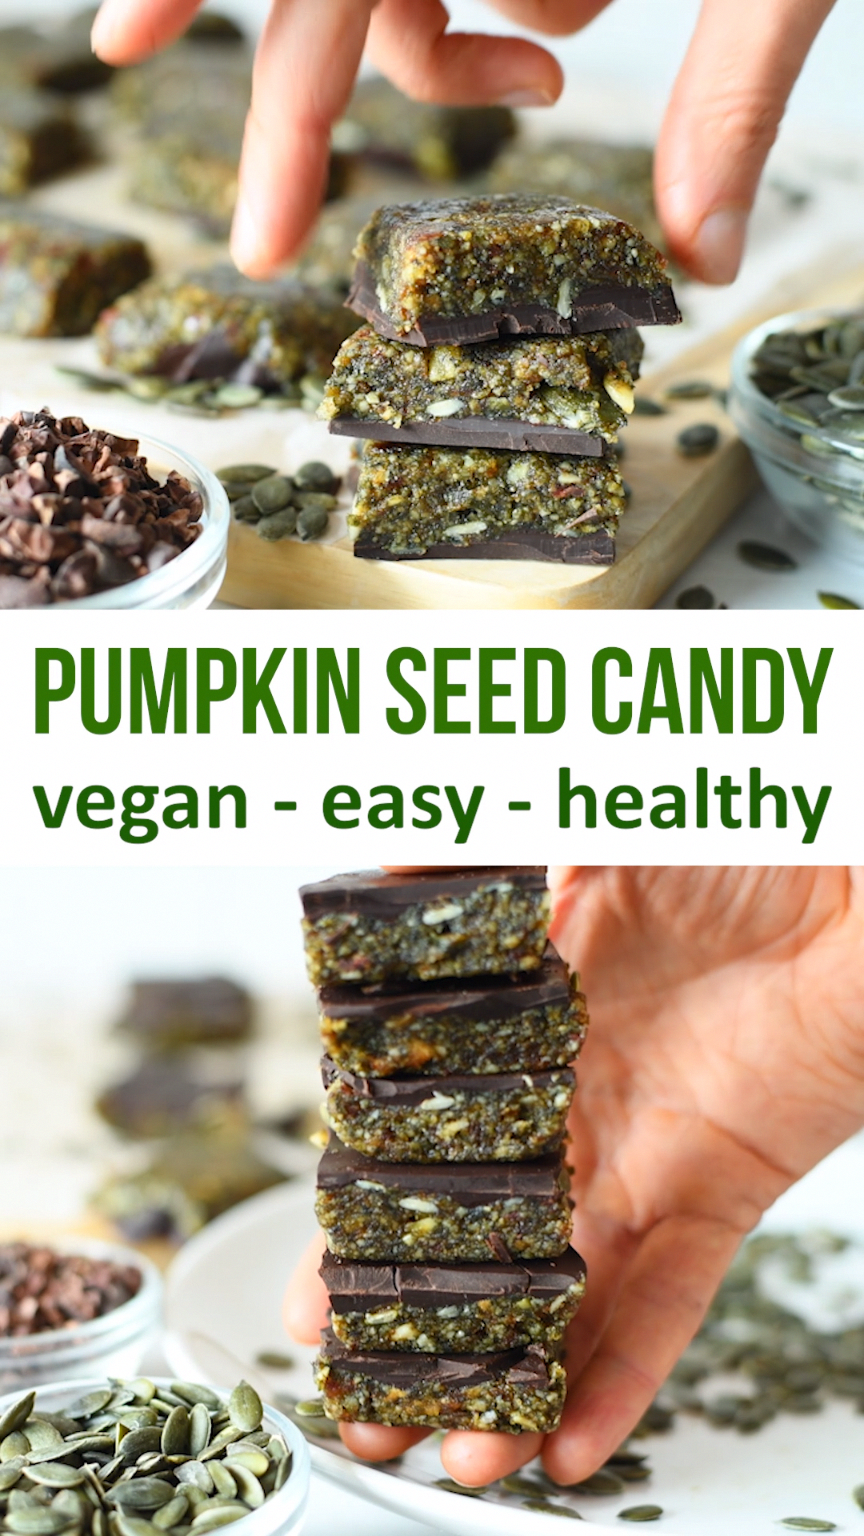 3-Ingredient pumpkin seed chocolate candy. Easy to make healthy treat made from pumpkin seeds, fruit and dark chocolate. Use a very dark chocolate that's high in cacao for health benefits